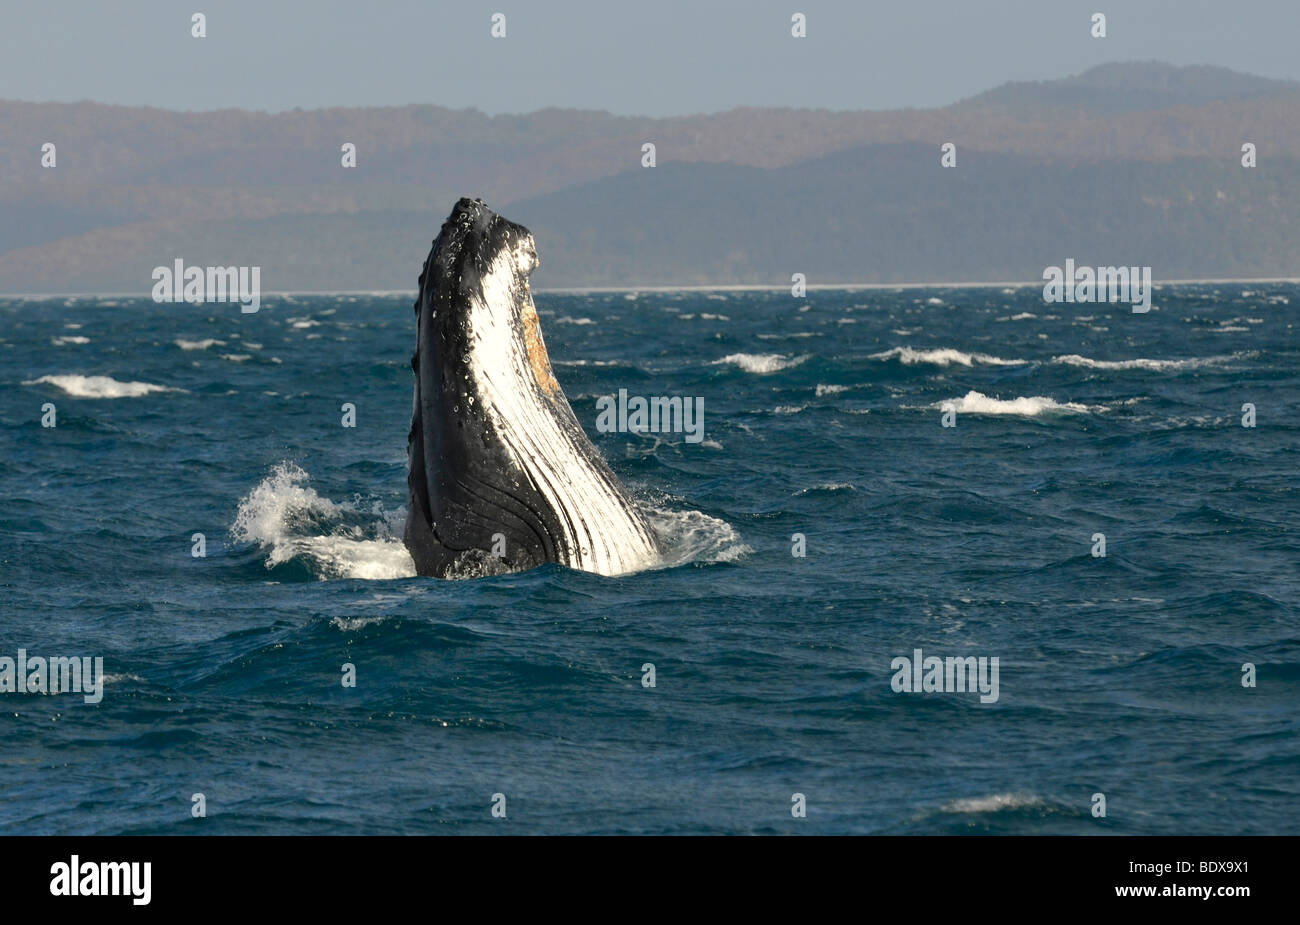 Species-specific spy hop, temporarily rising its head out of the water, of a Humpback Whale (Megaptera novaeangliae) - Stock Image